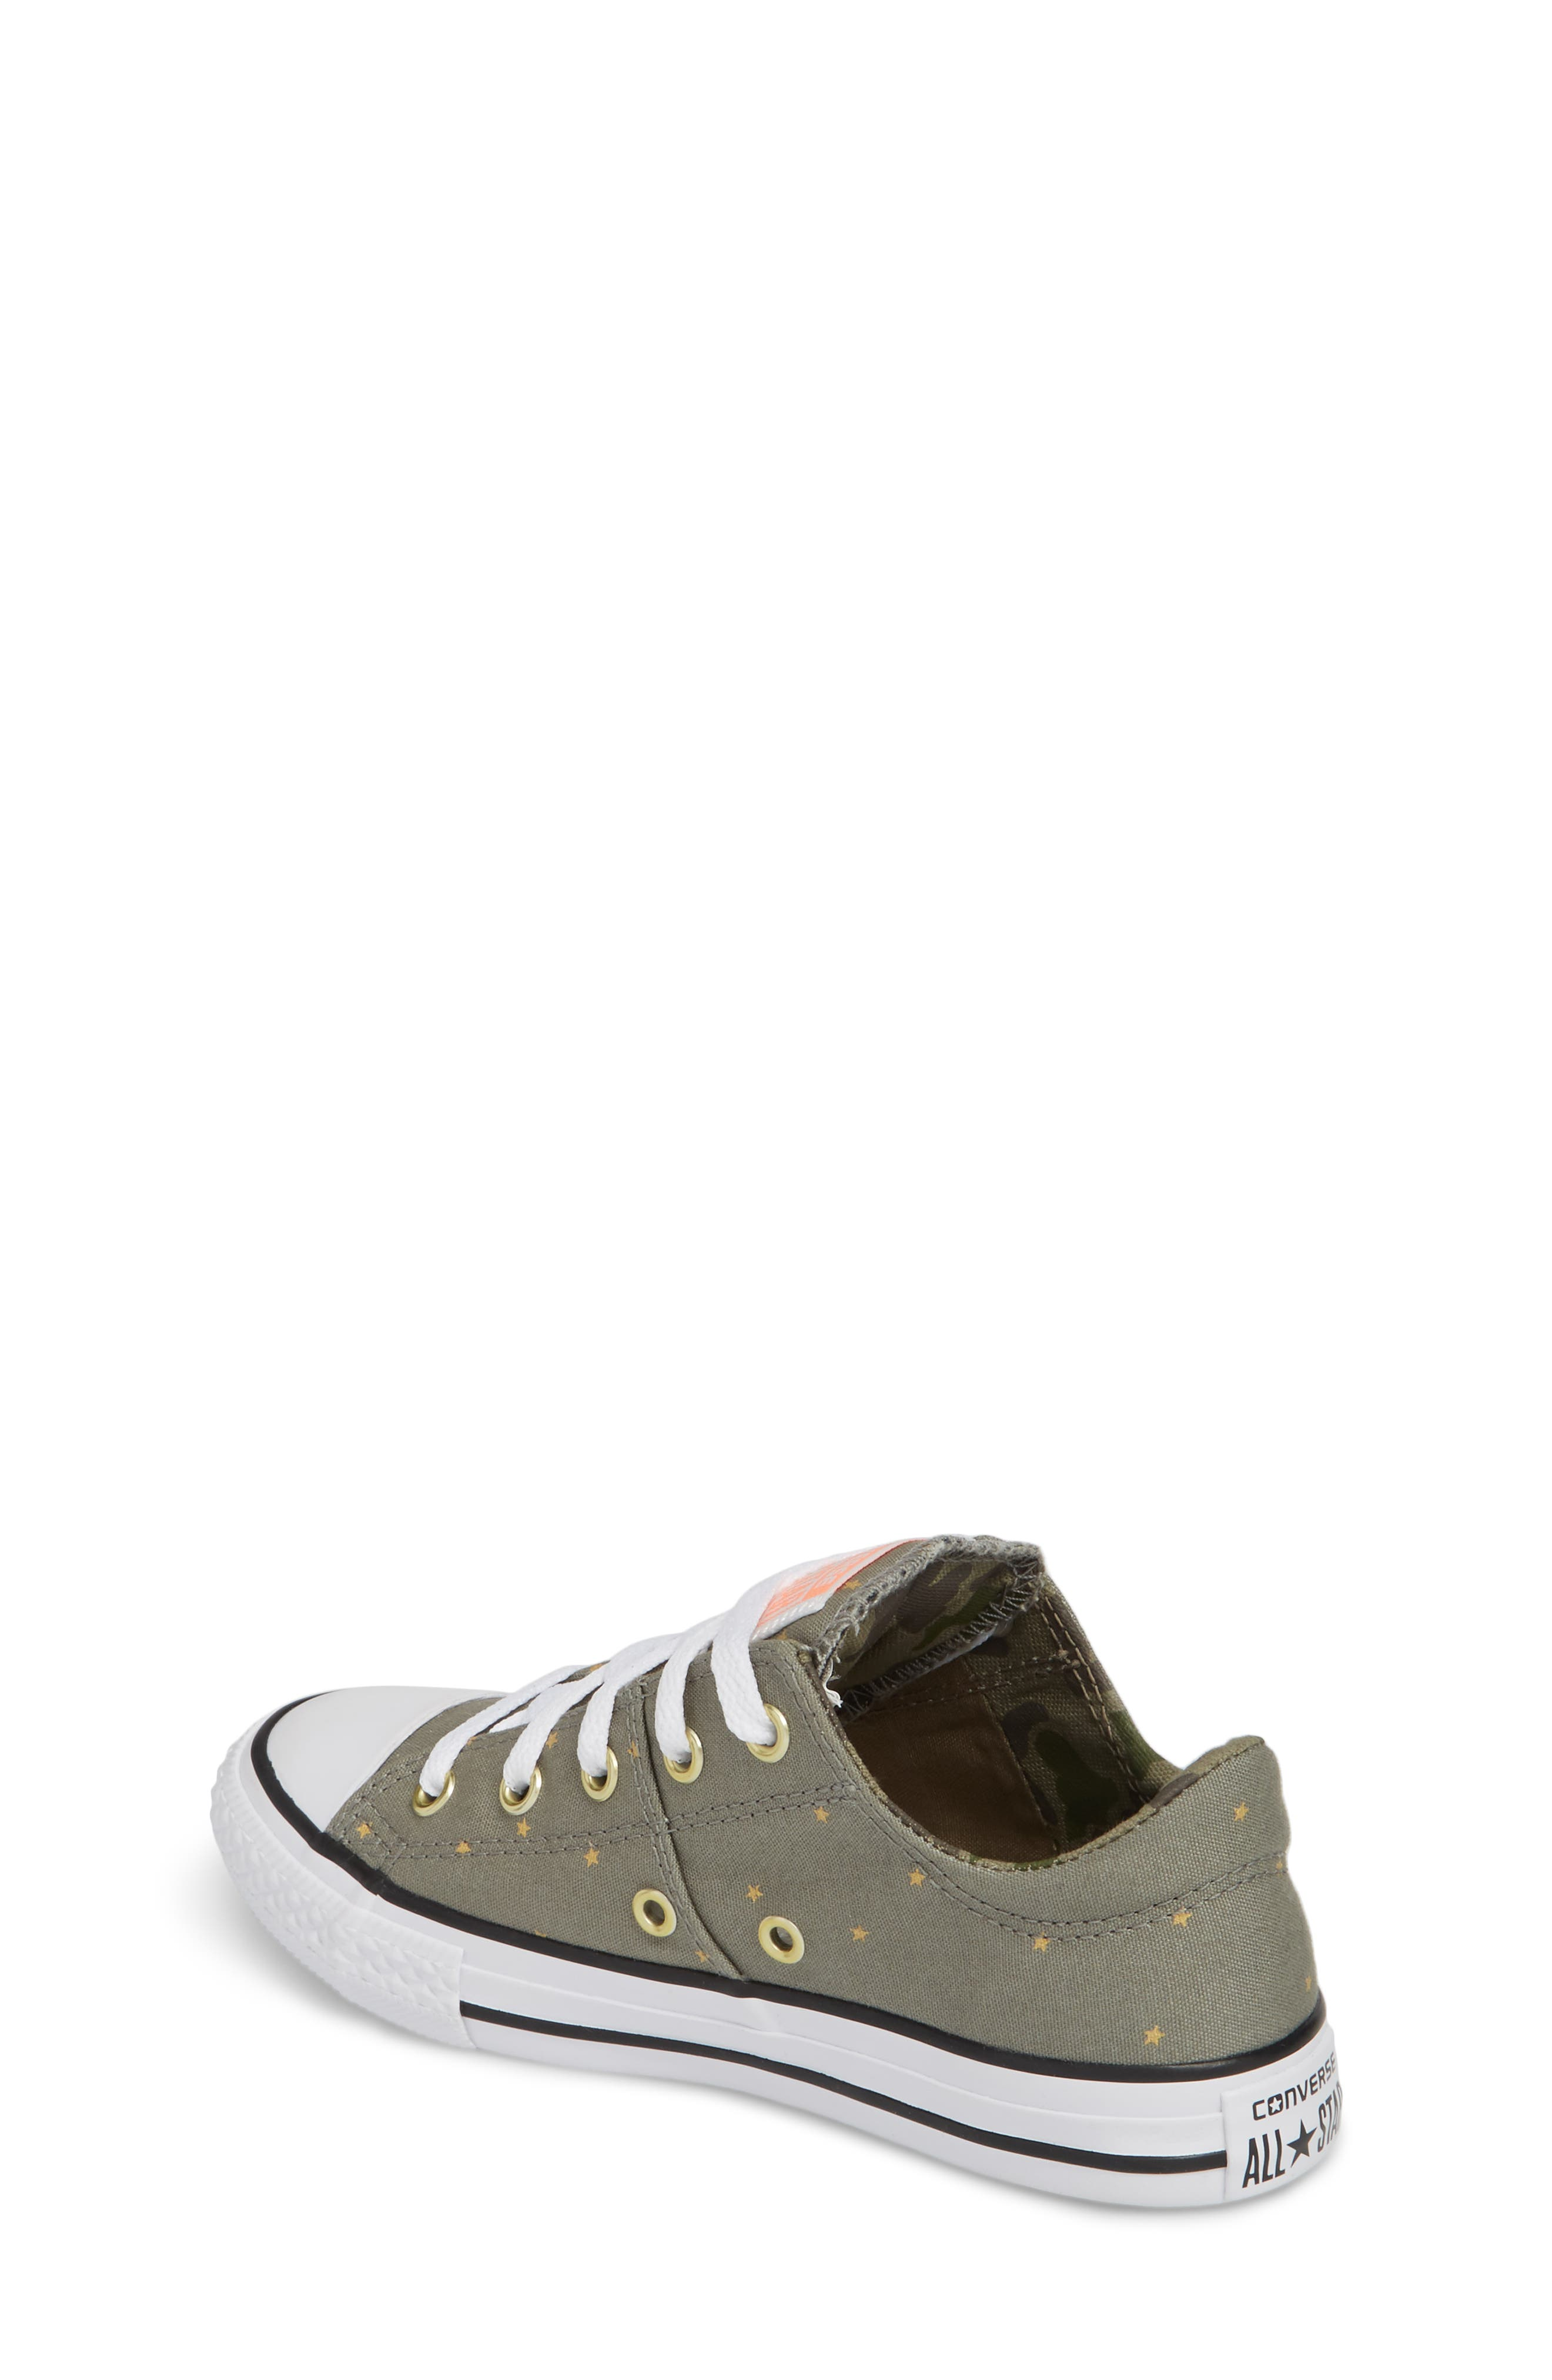 All Star<sup>®</sup> Madison Patterned Low Top Sneaker,                             Alternate thumbnail 2, color,                             022